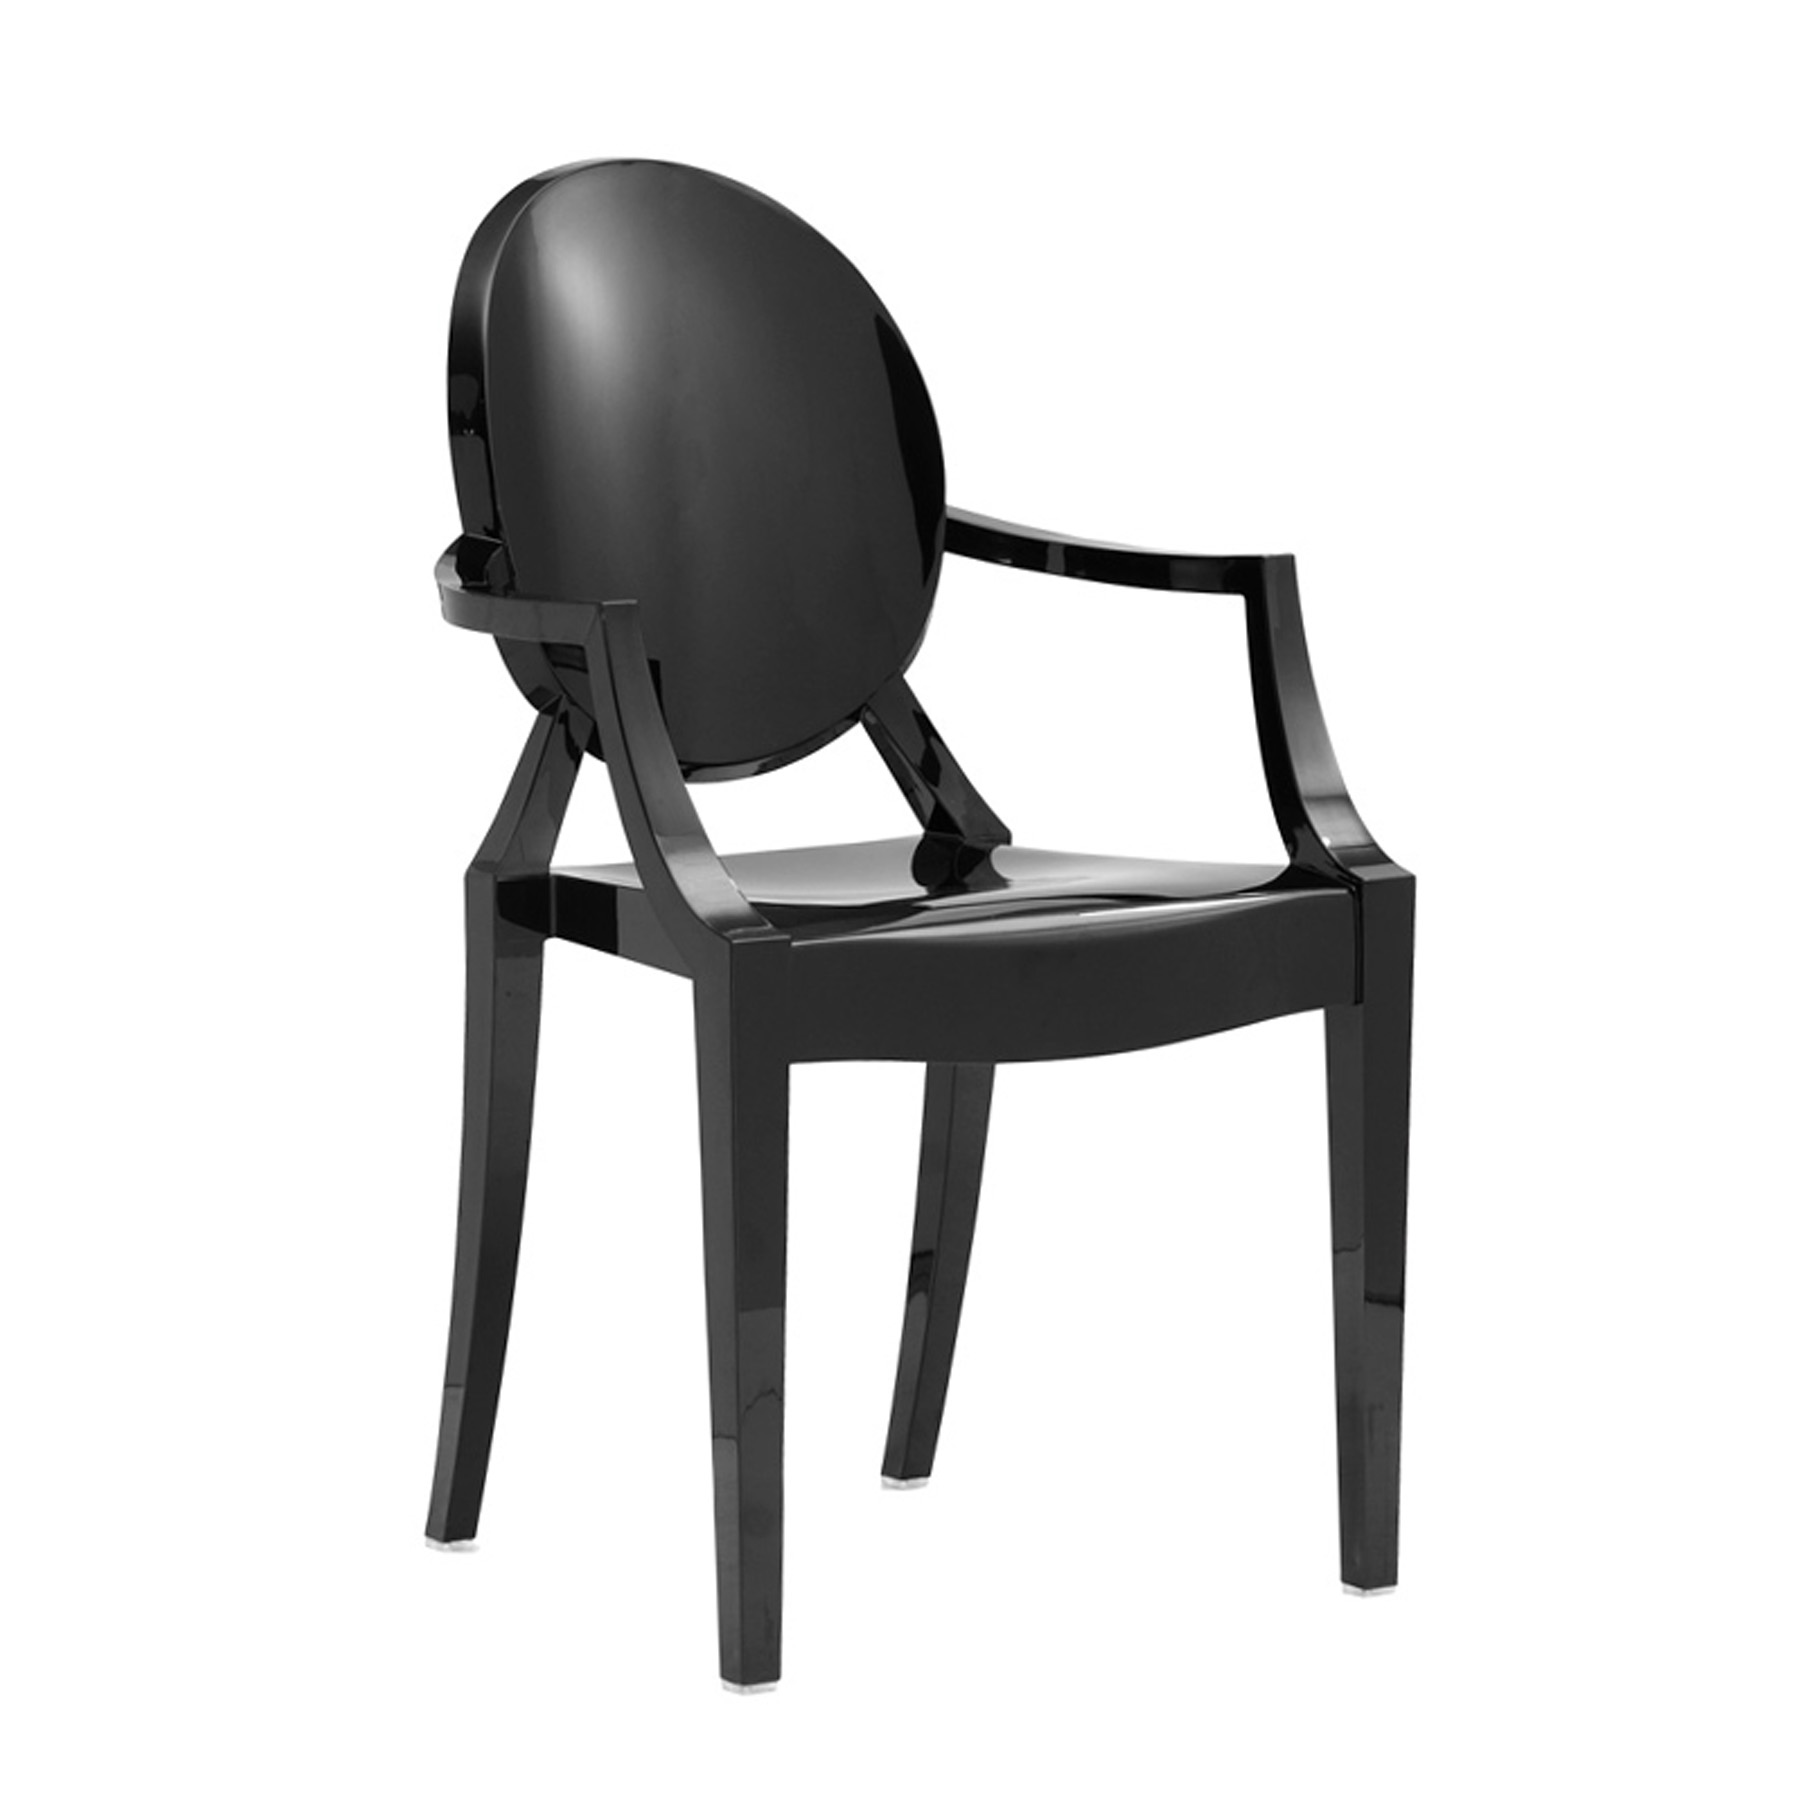 ghost chair. Black Bedroom Furniture Sets. Home Design Ideas